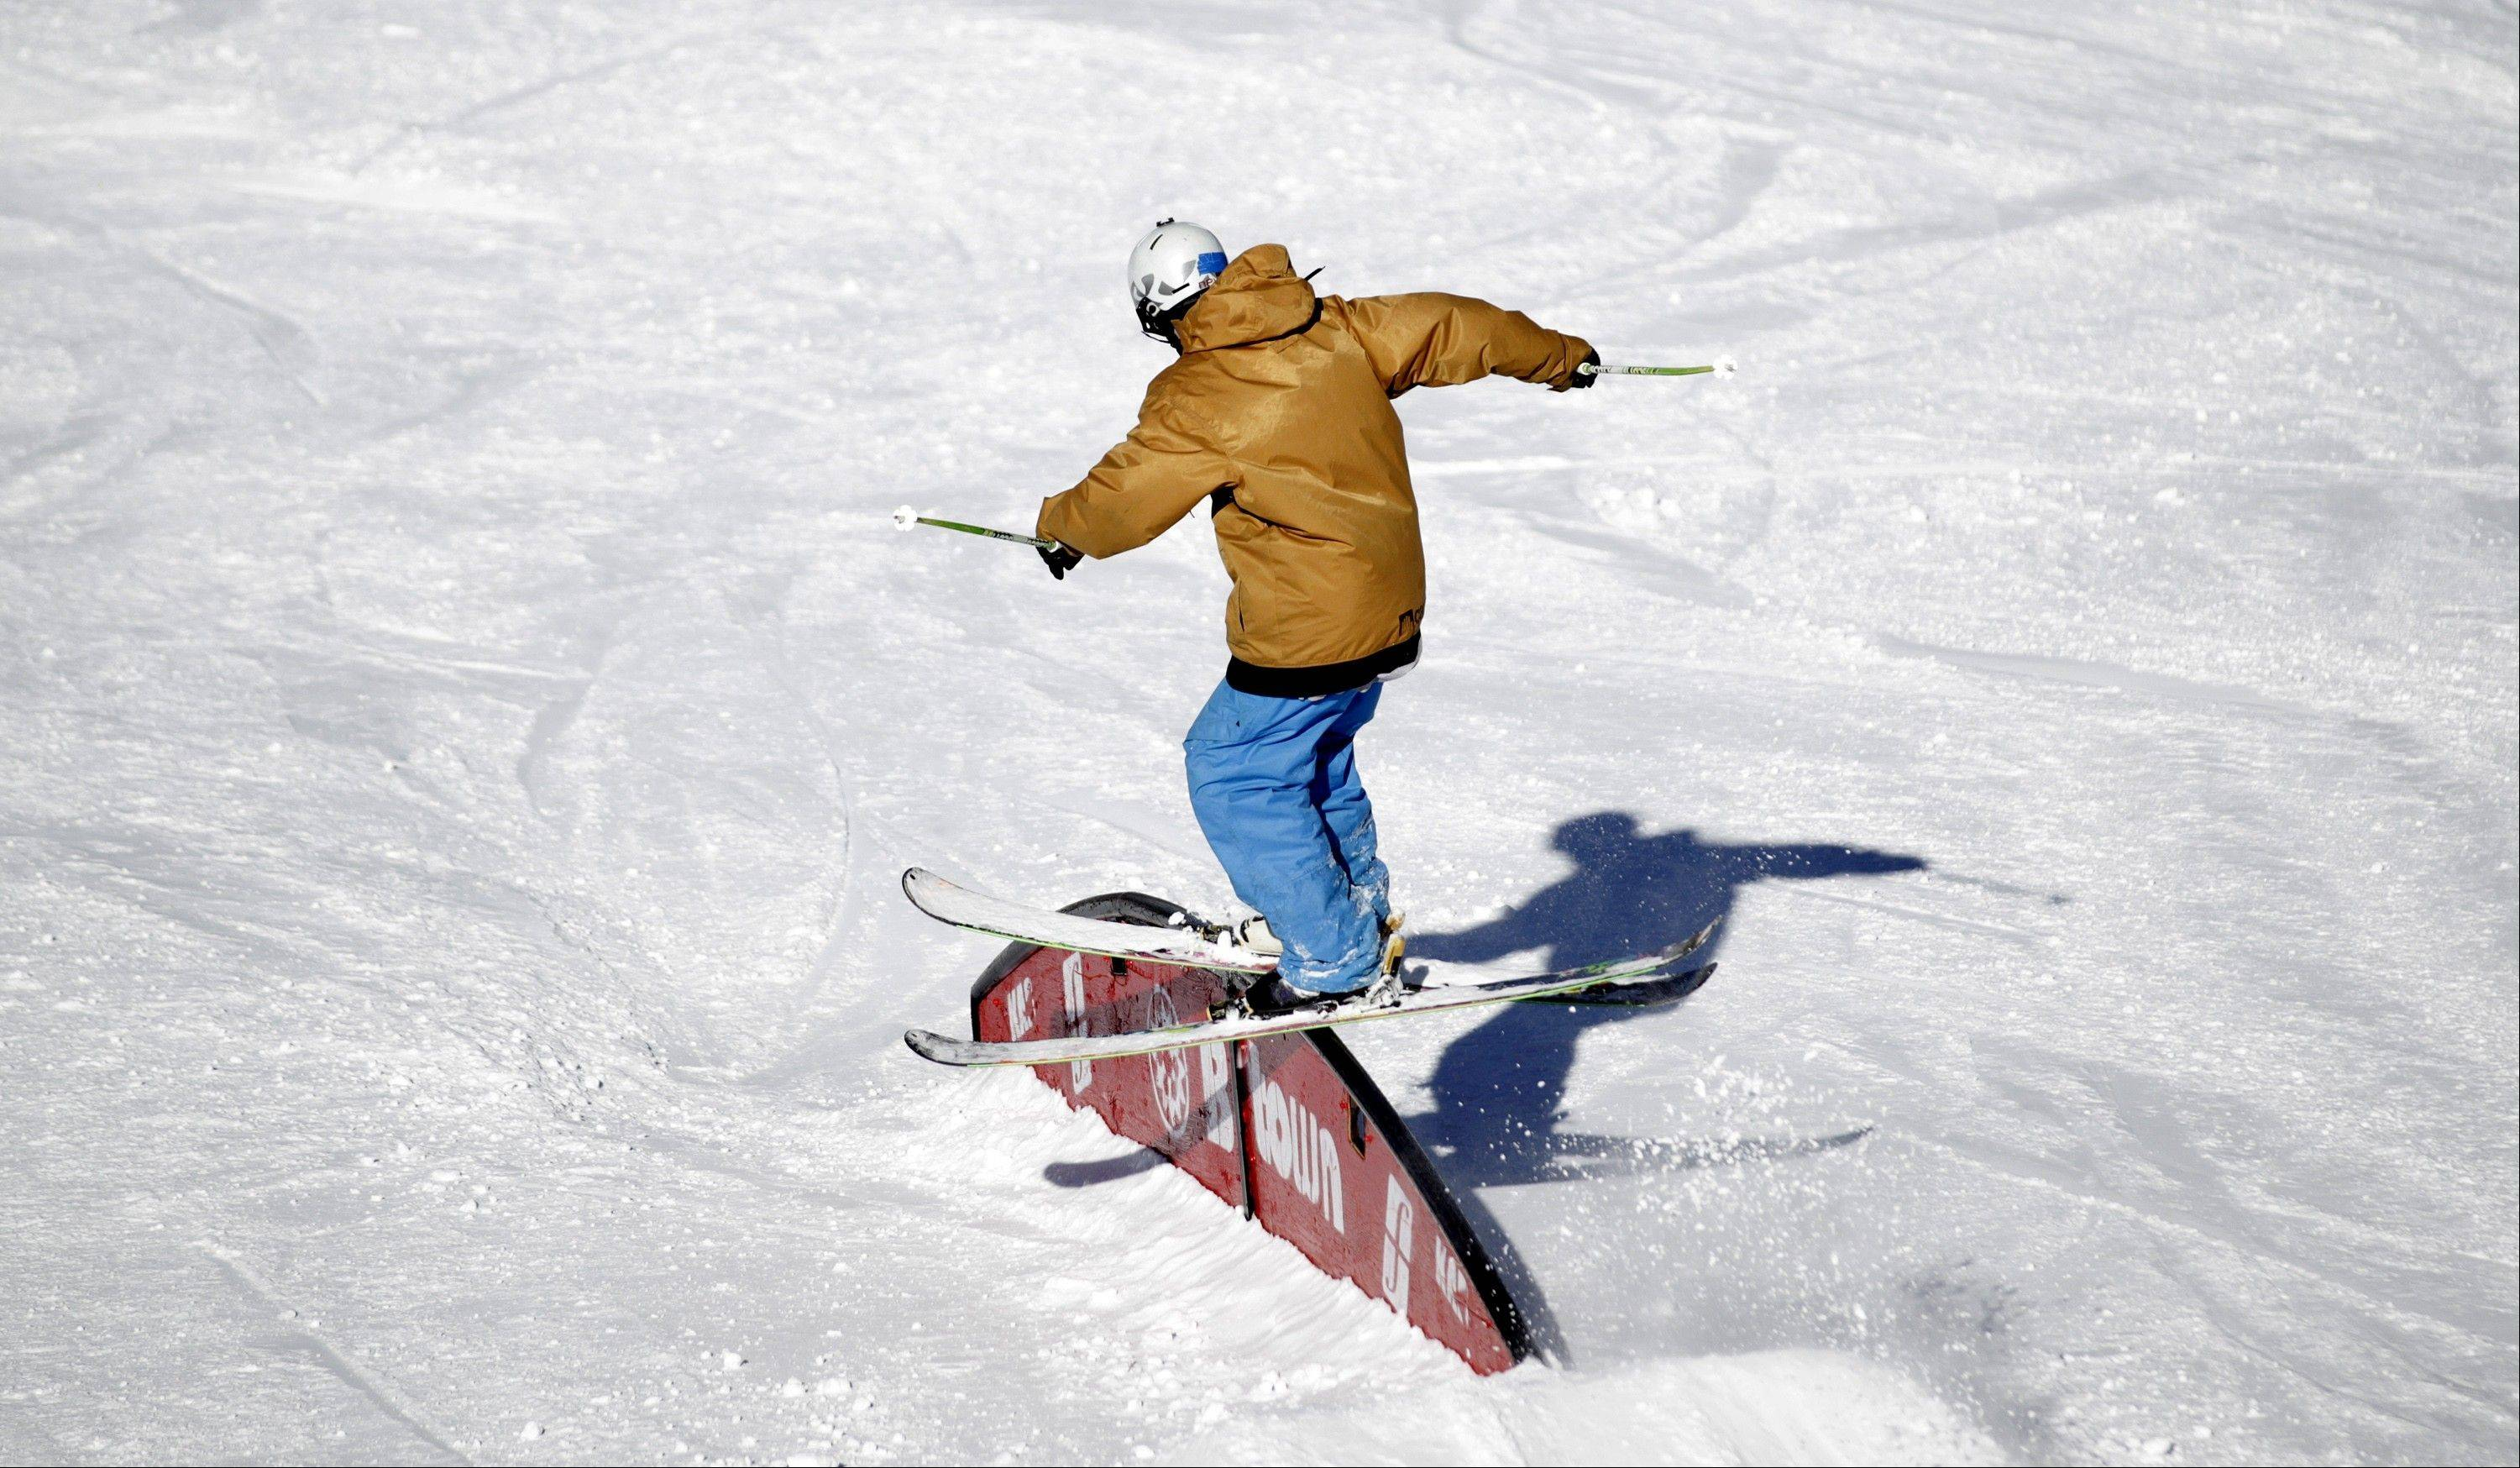 A skier makes a jump in the terrain park in the Wasatch Range in Utah.